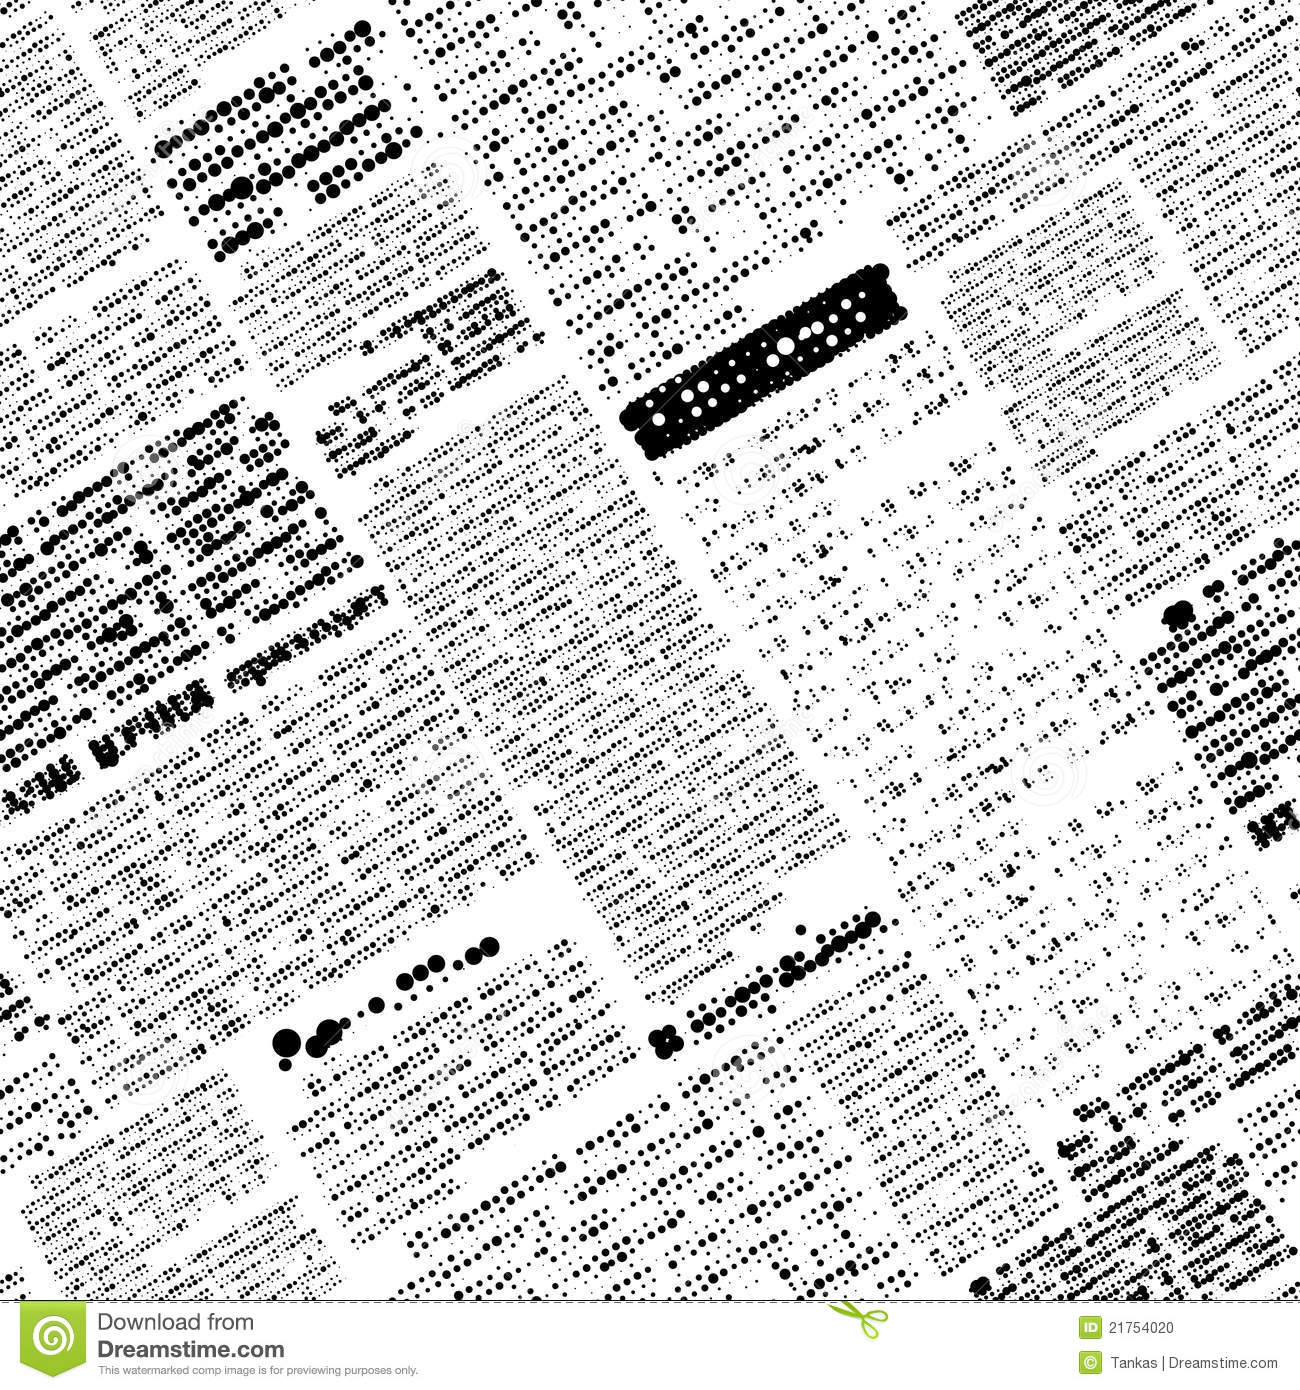 fake newspaper stock vector. illustration of seamless - 21754020